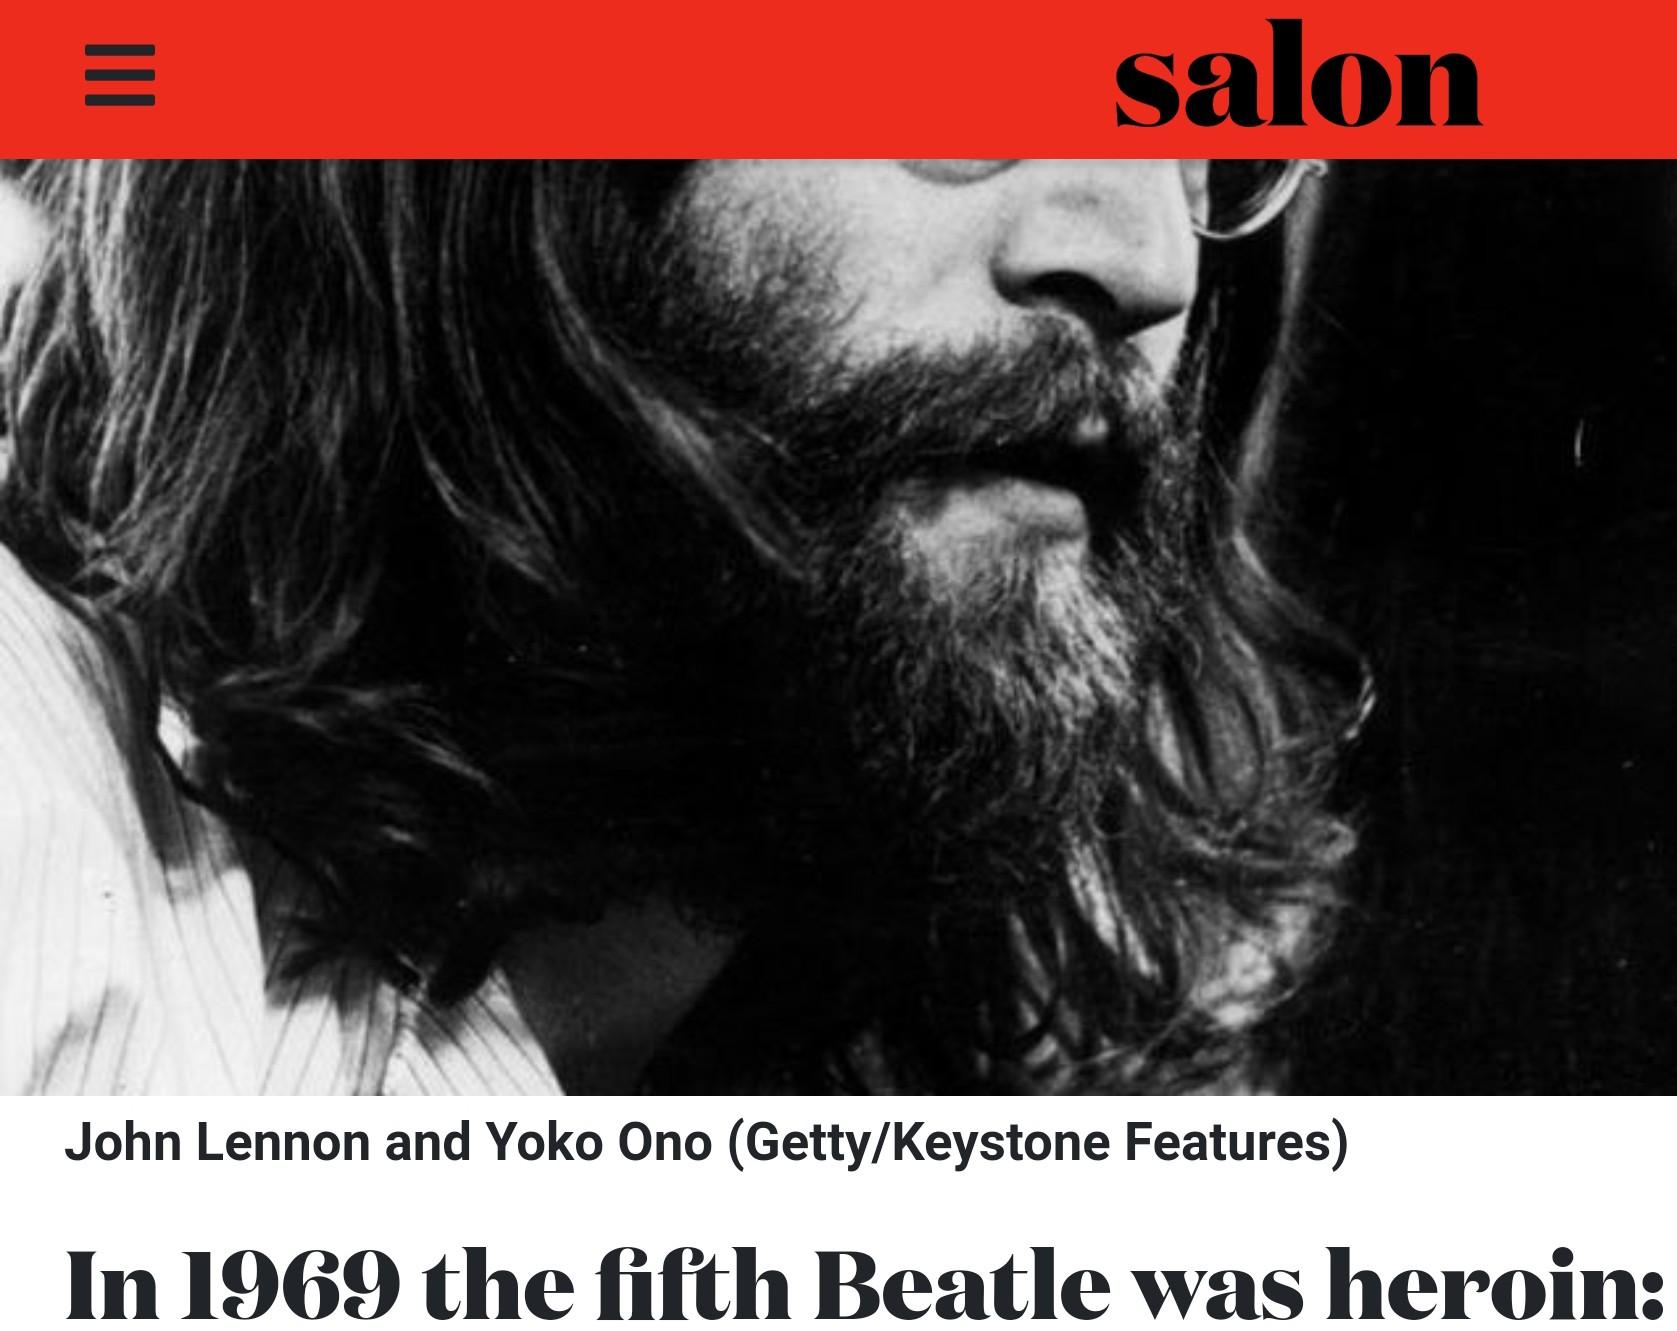 Salon is on a whole nother level : beatlescirclejerk